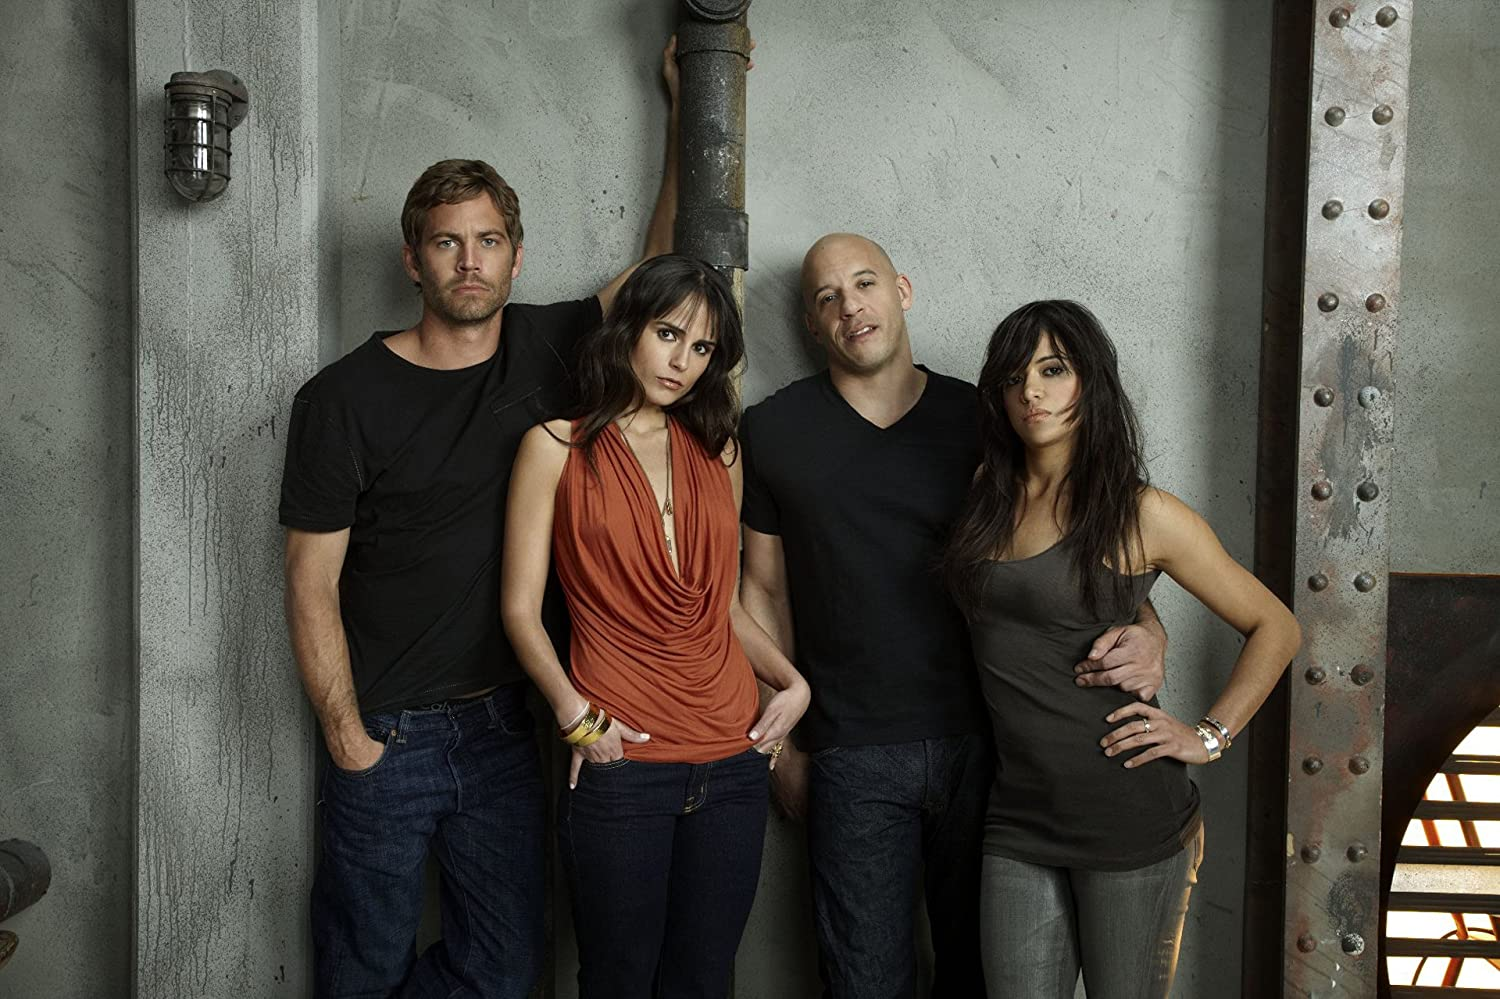 Fast and Furious, The primary characters of the franchise - including Brian, Mia, Dominic and, Letty are introduced.